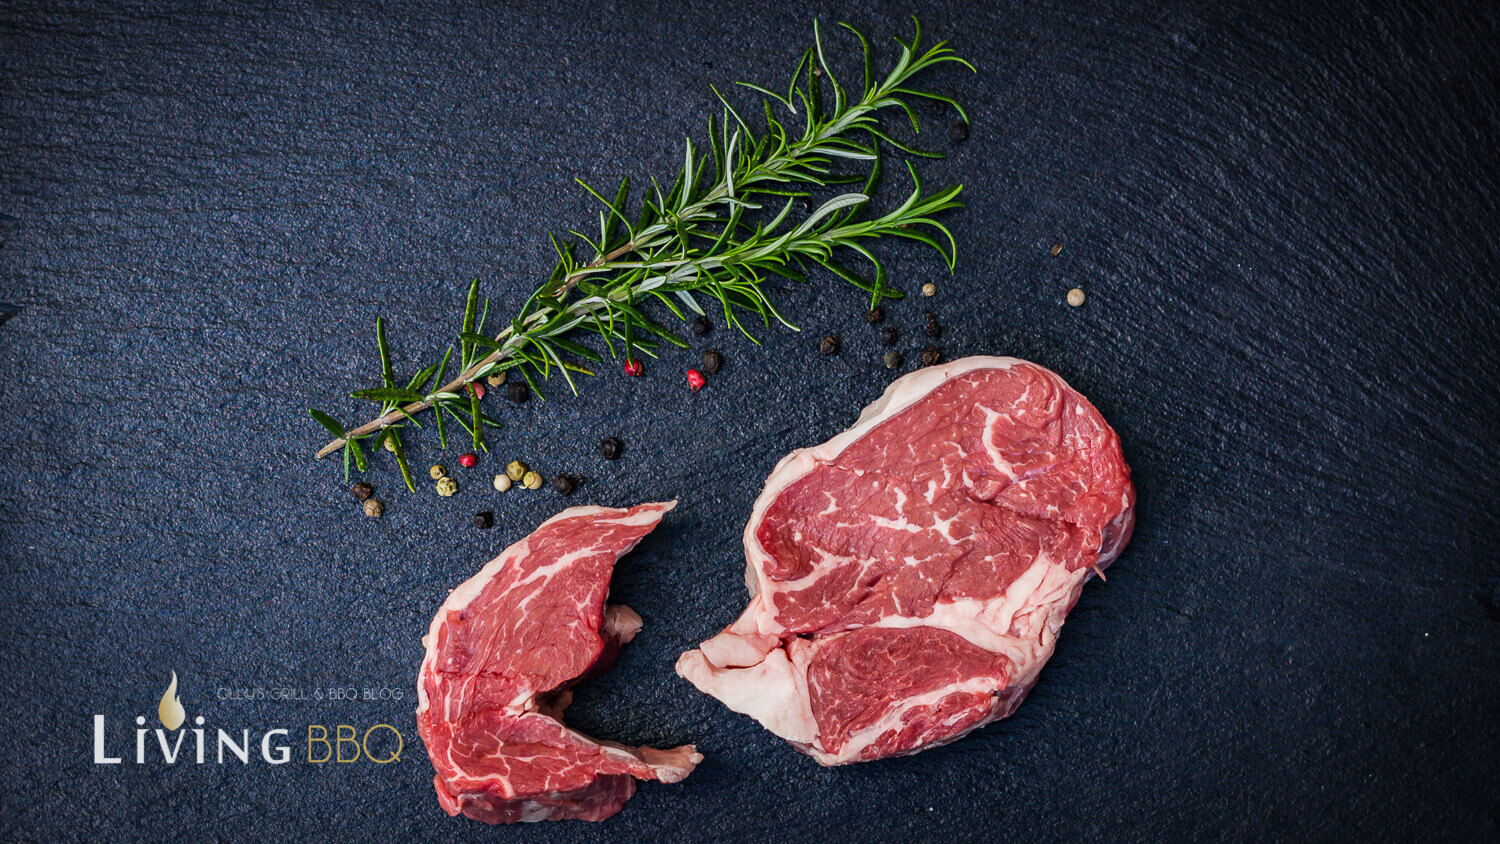 Rib Eye Steak Entrecote Cap of Ribeye cap of rib eye_Ribeye Entrecote Cap of Ribeye 4 von 14